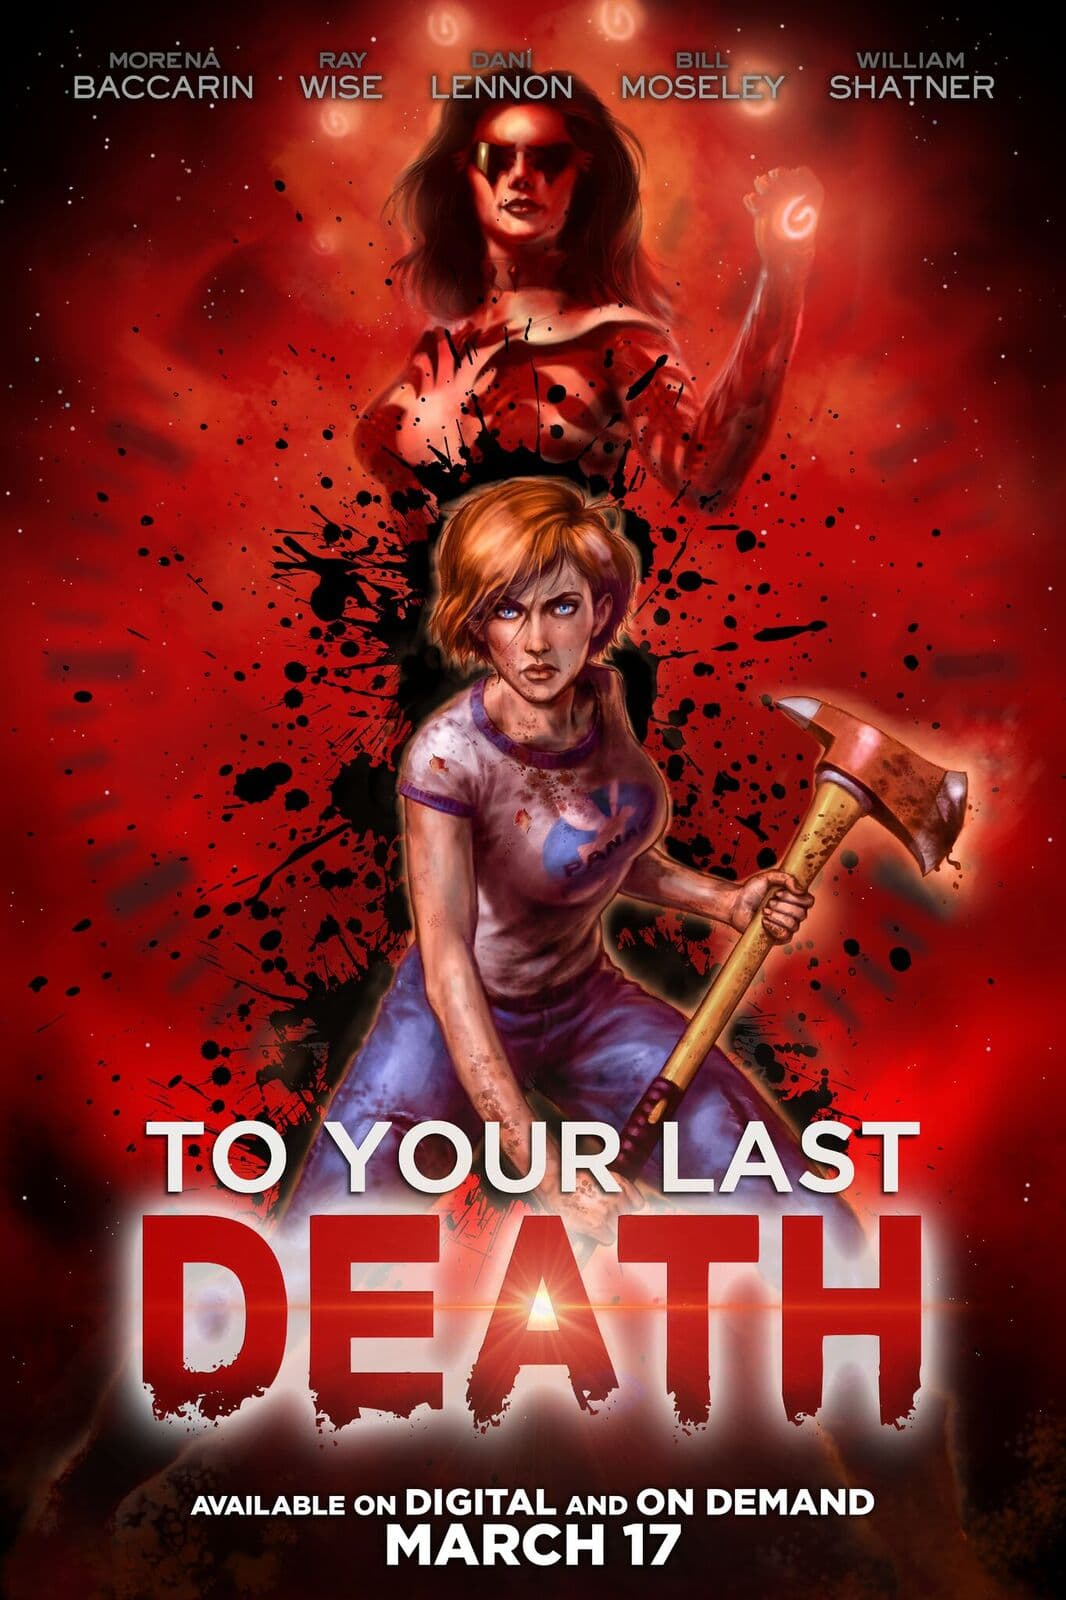 [Interview] Director Jason Axinn and Actor Dani Lennon Talk Animated Violence in TO YOUR LAST DEATH